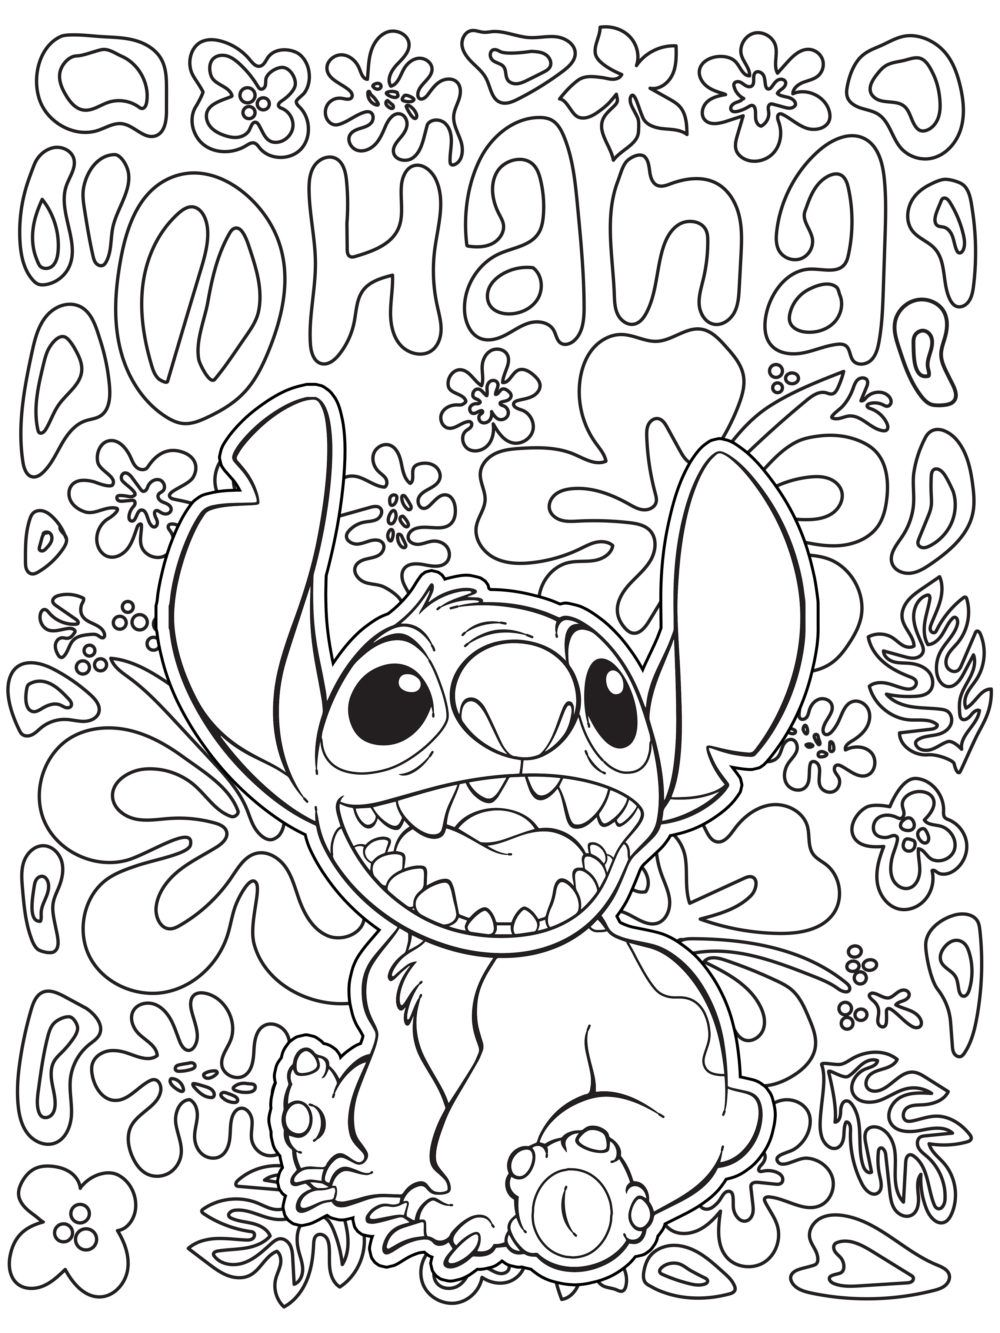 Celebrate National Coloring Book Day With | Pinterest | Colorear ...